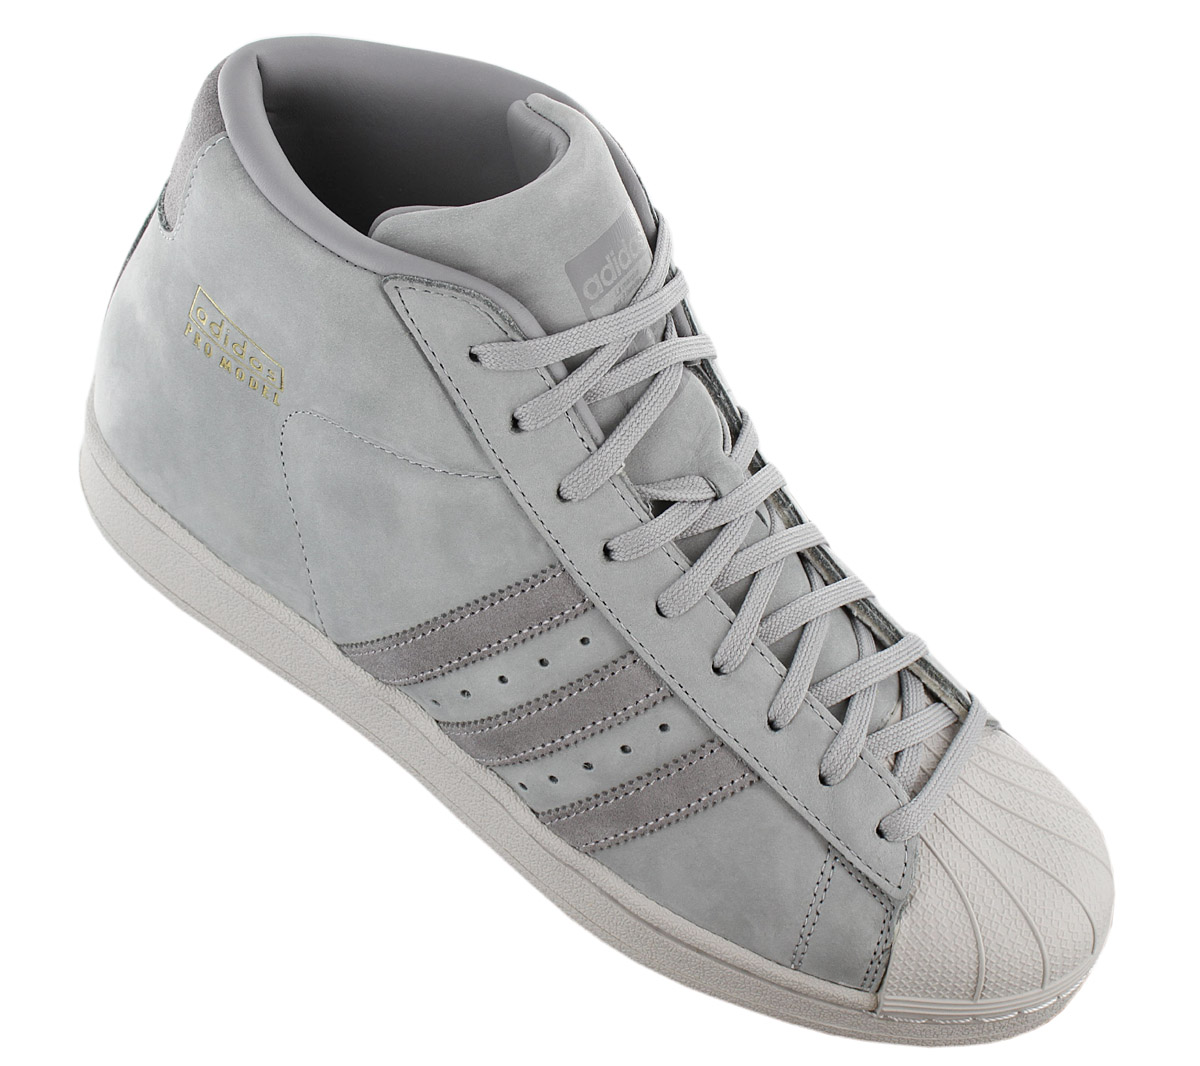 Details zu adidas Originals Pro Model Leather Superstar Sneaker Schuh Grau BZ0215 Turnschuh